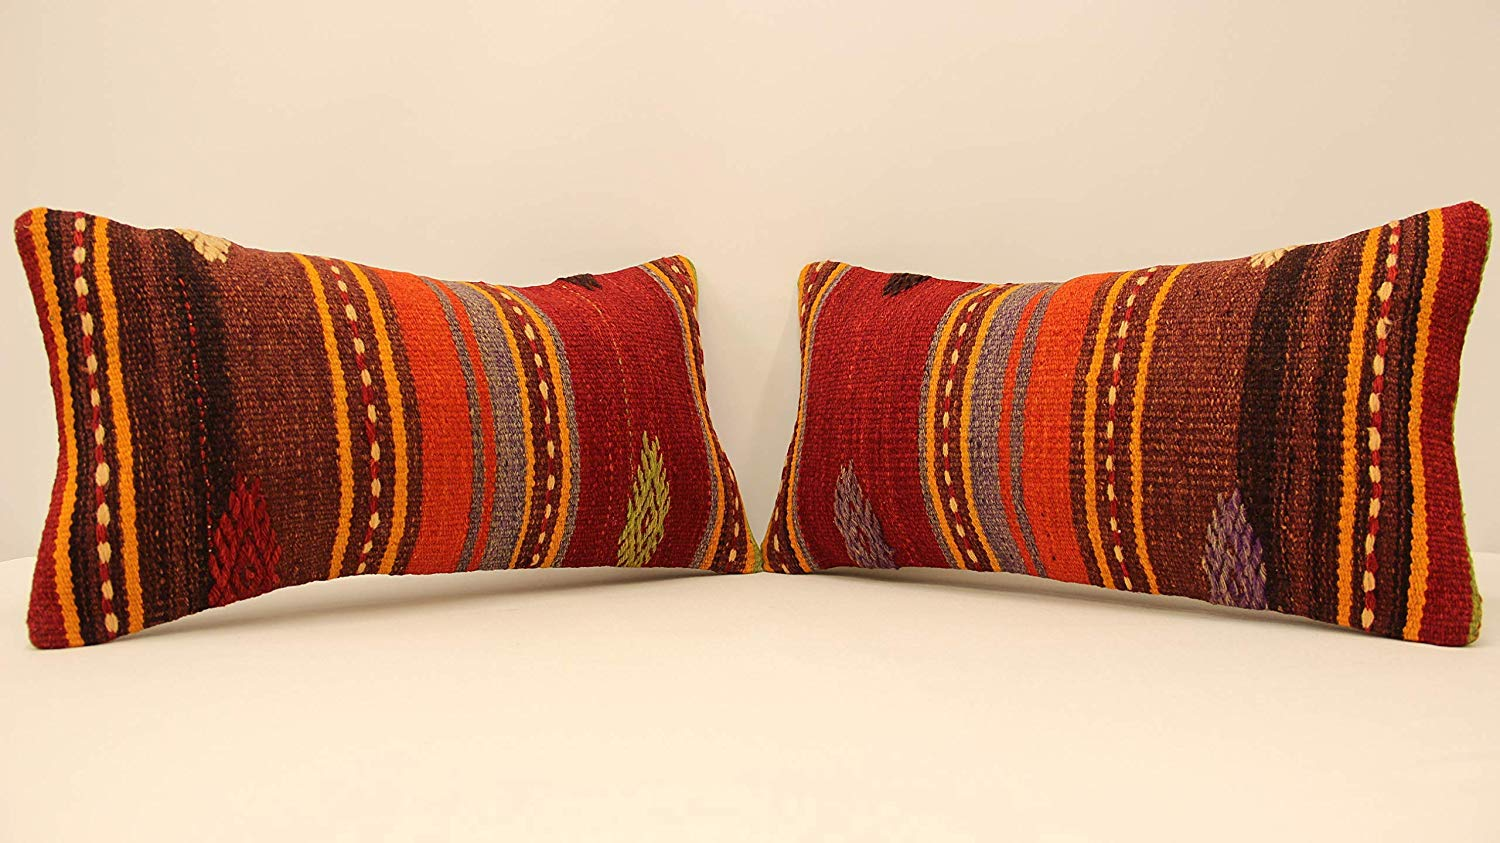 Buy Decorative Throw Pillow Muted Red Earth Tone Stripe